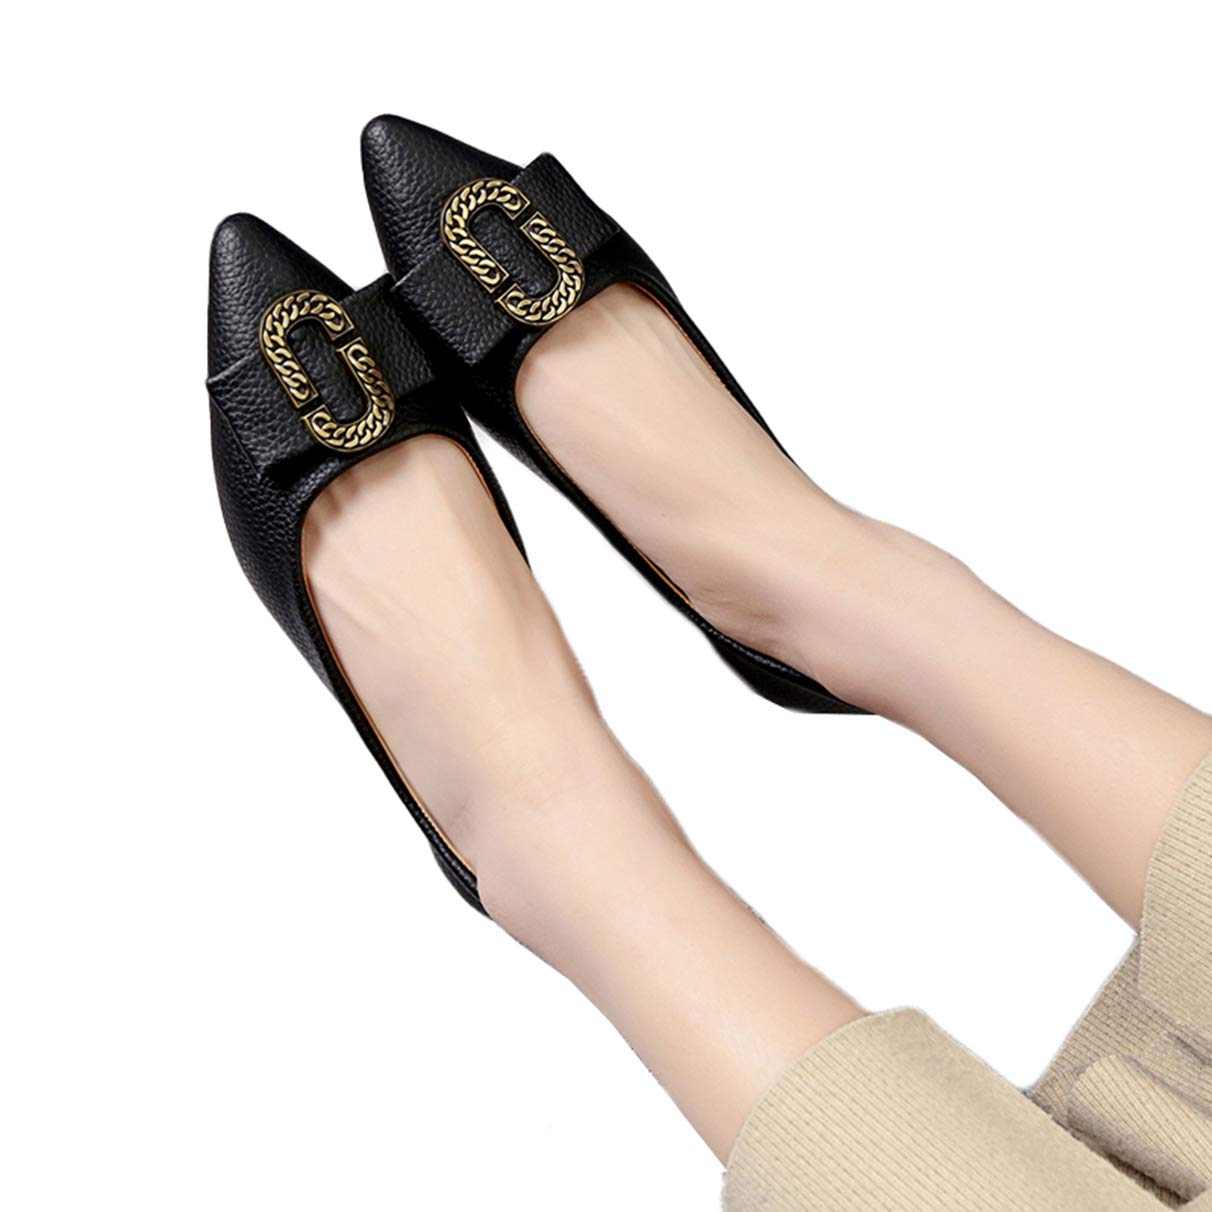 Owen Moll Women Flats Solid Metal Decoration Pointed Toe Slip-On Loafer Oxford Shoes